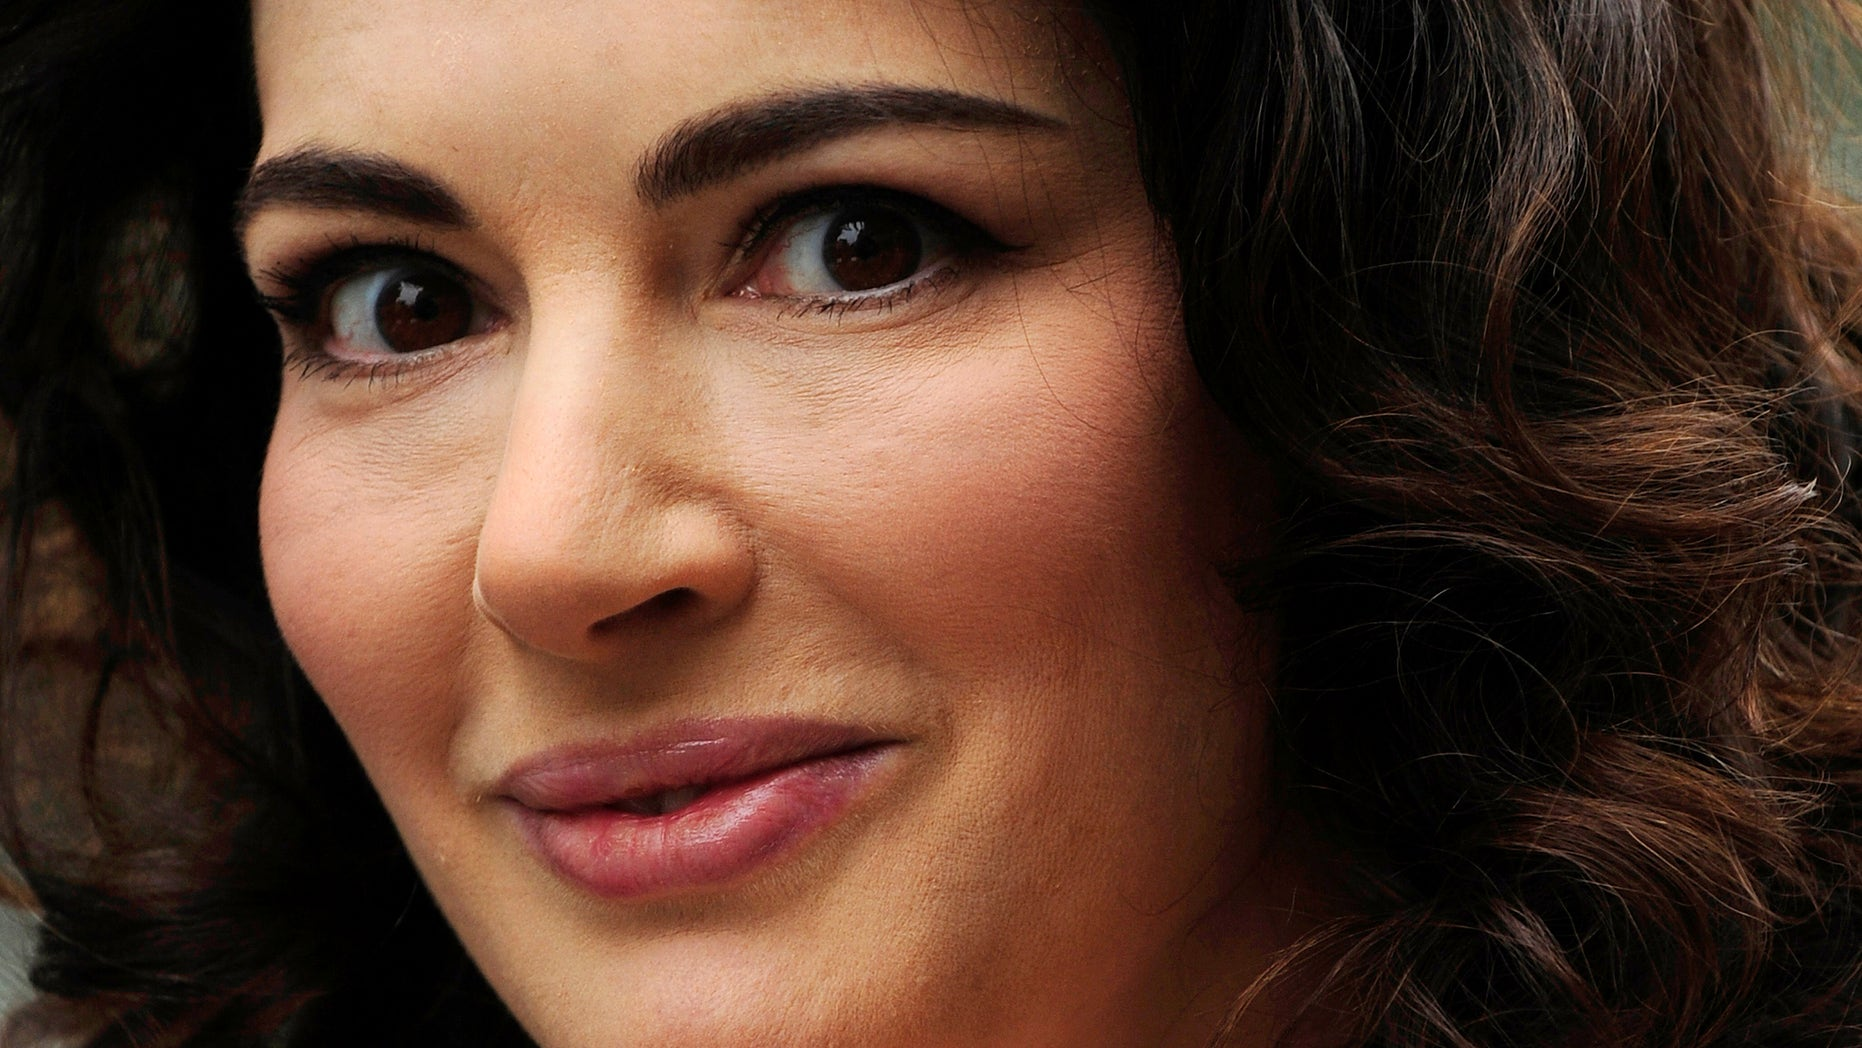 June 17, 2009. British chef and food writer Nigella Lawson arrives for the British premiere of the film Bruno at Leicester Square in central London.